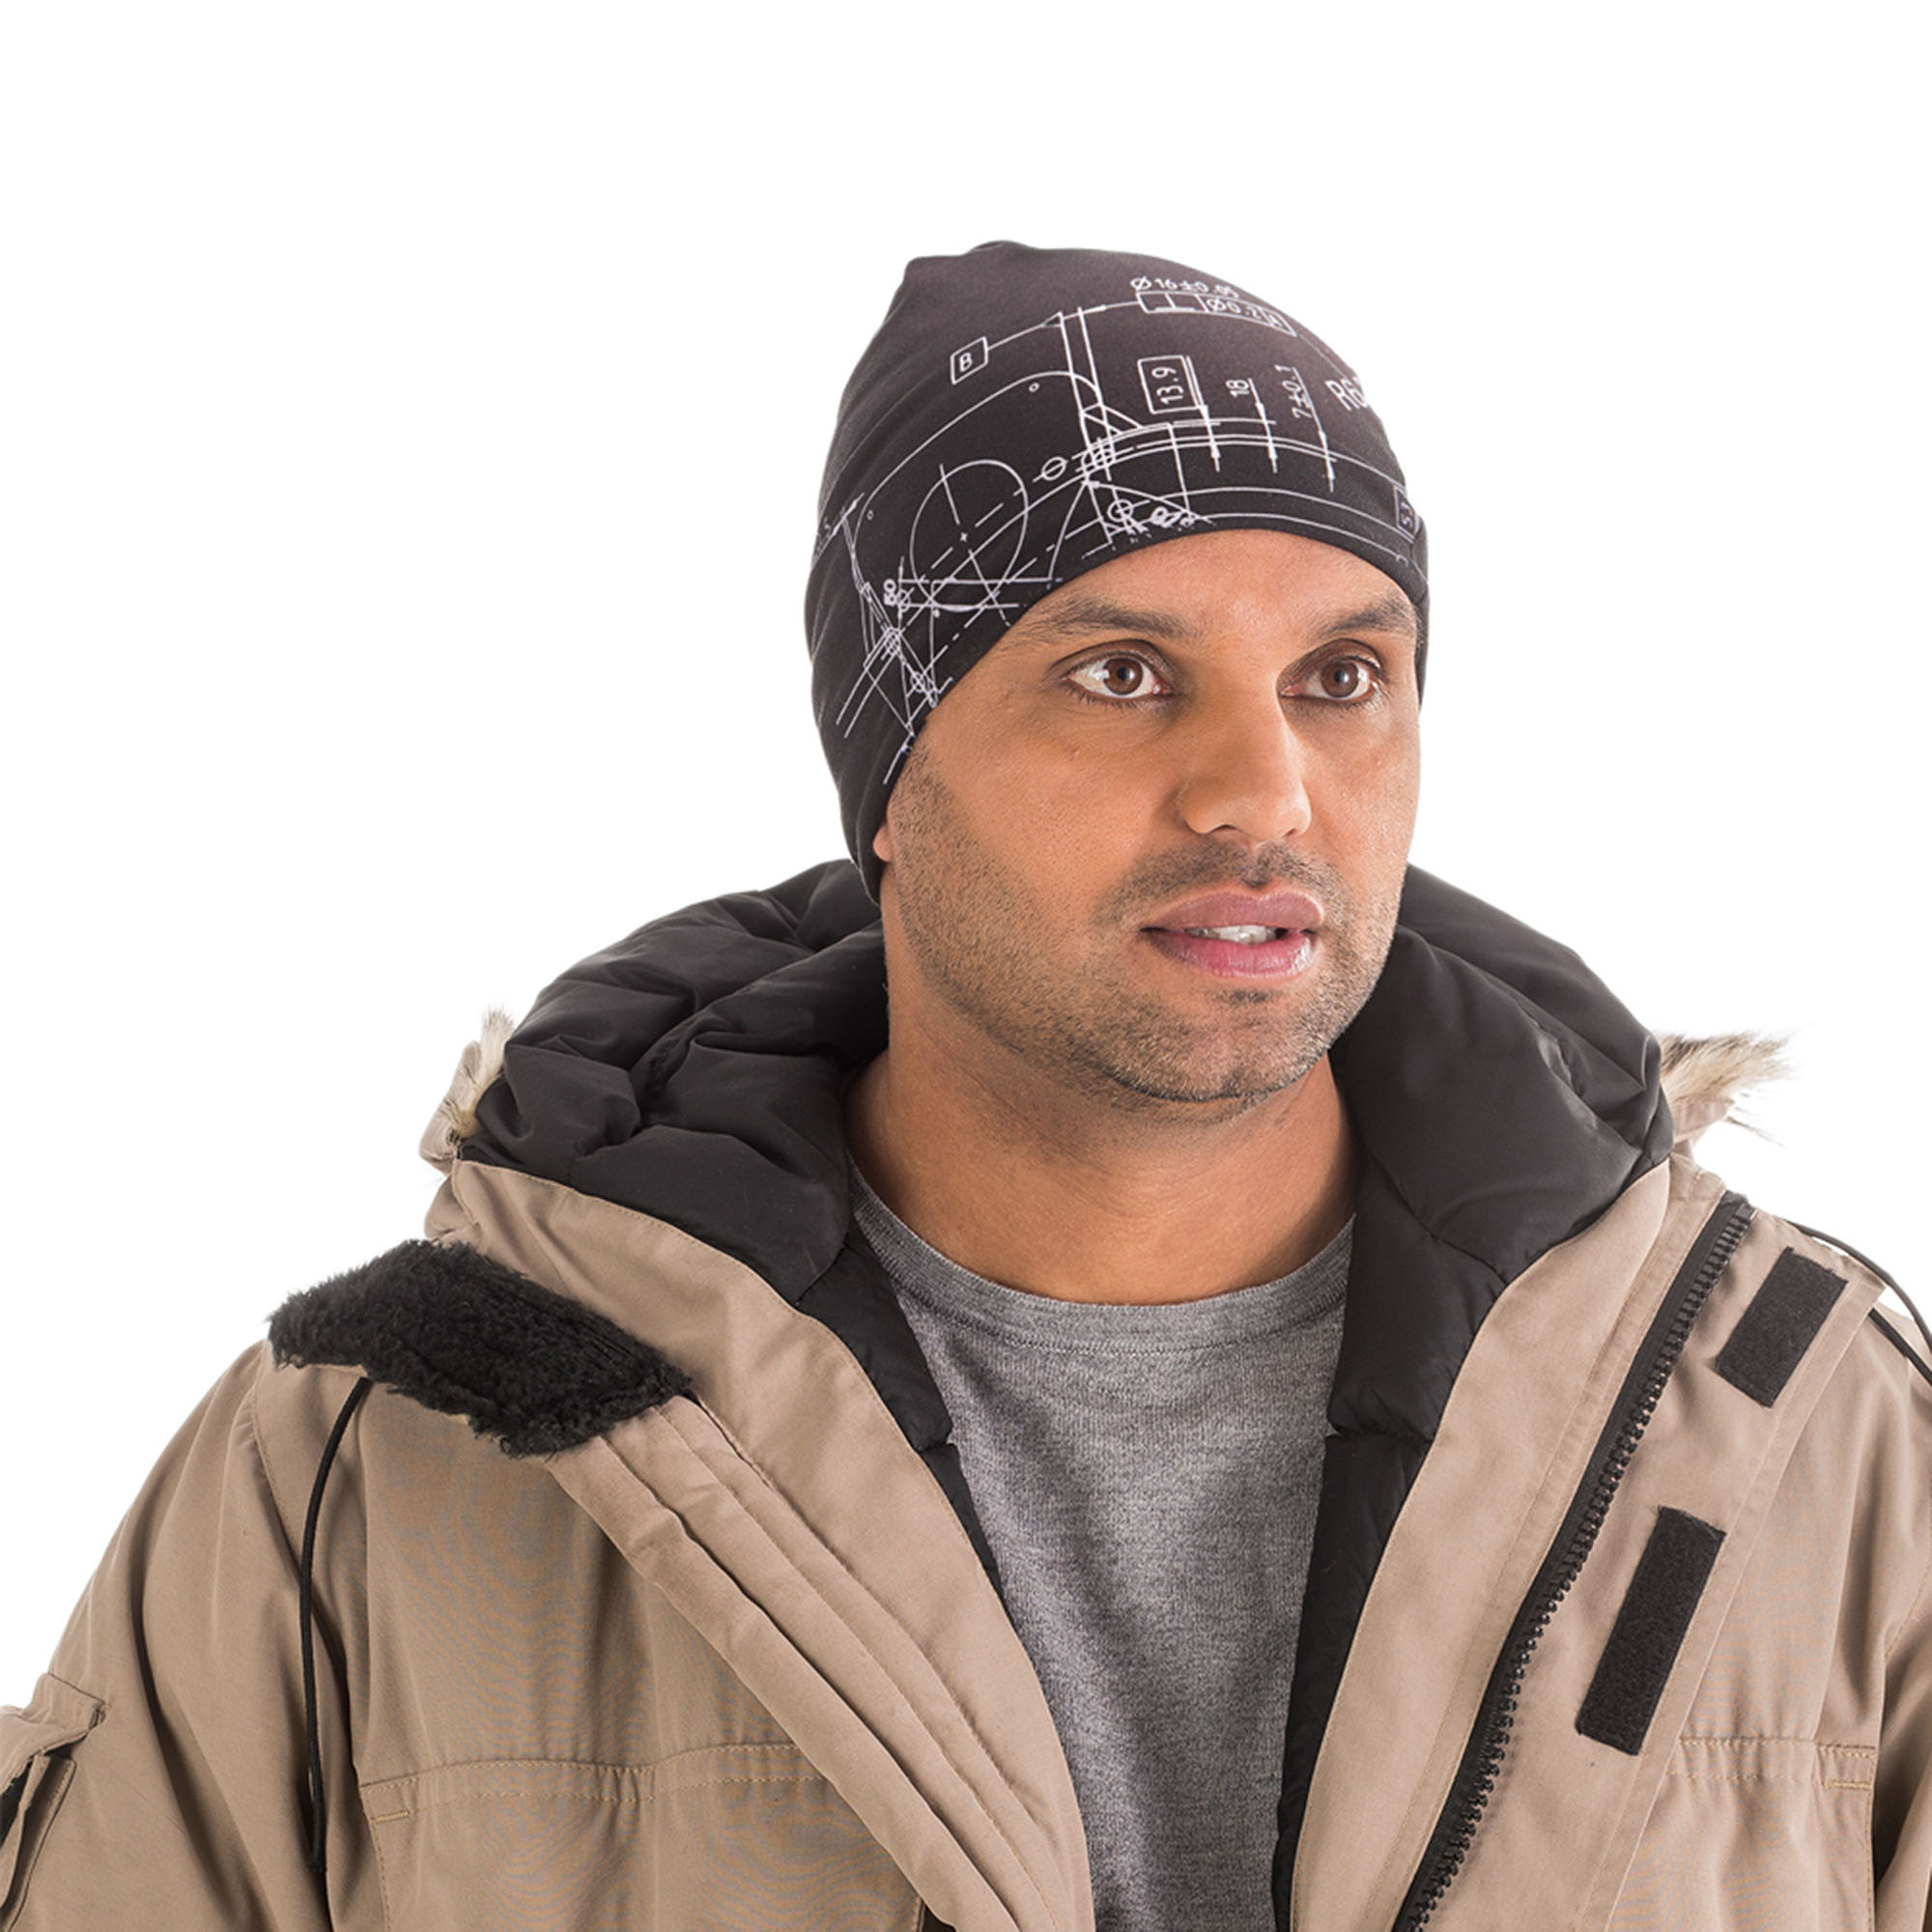 Beanie made in microfiber with reflective contrast stitching. The BluePrint pattern is also reflective. A good mix of safety, design and fabric that can handle performance.